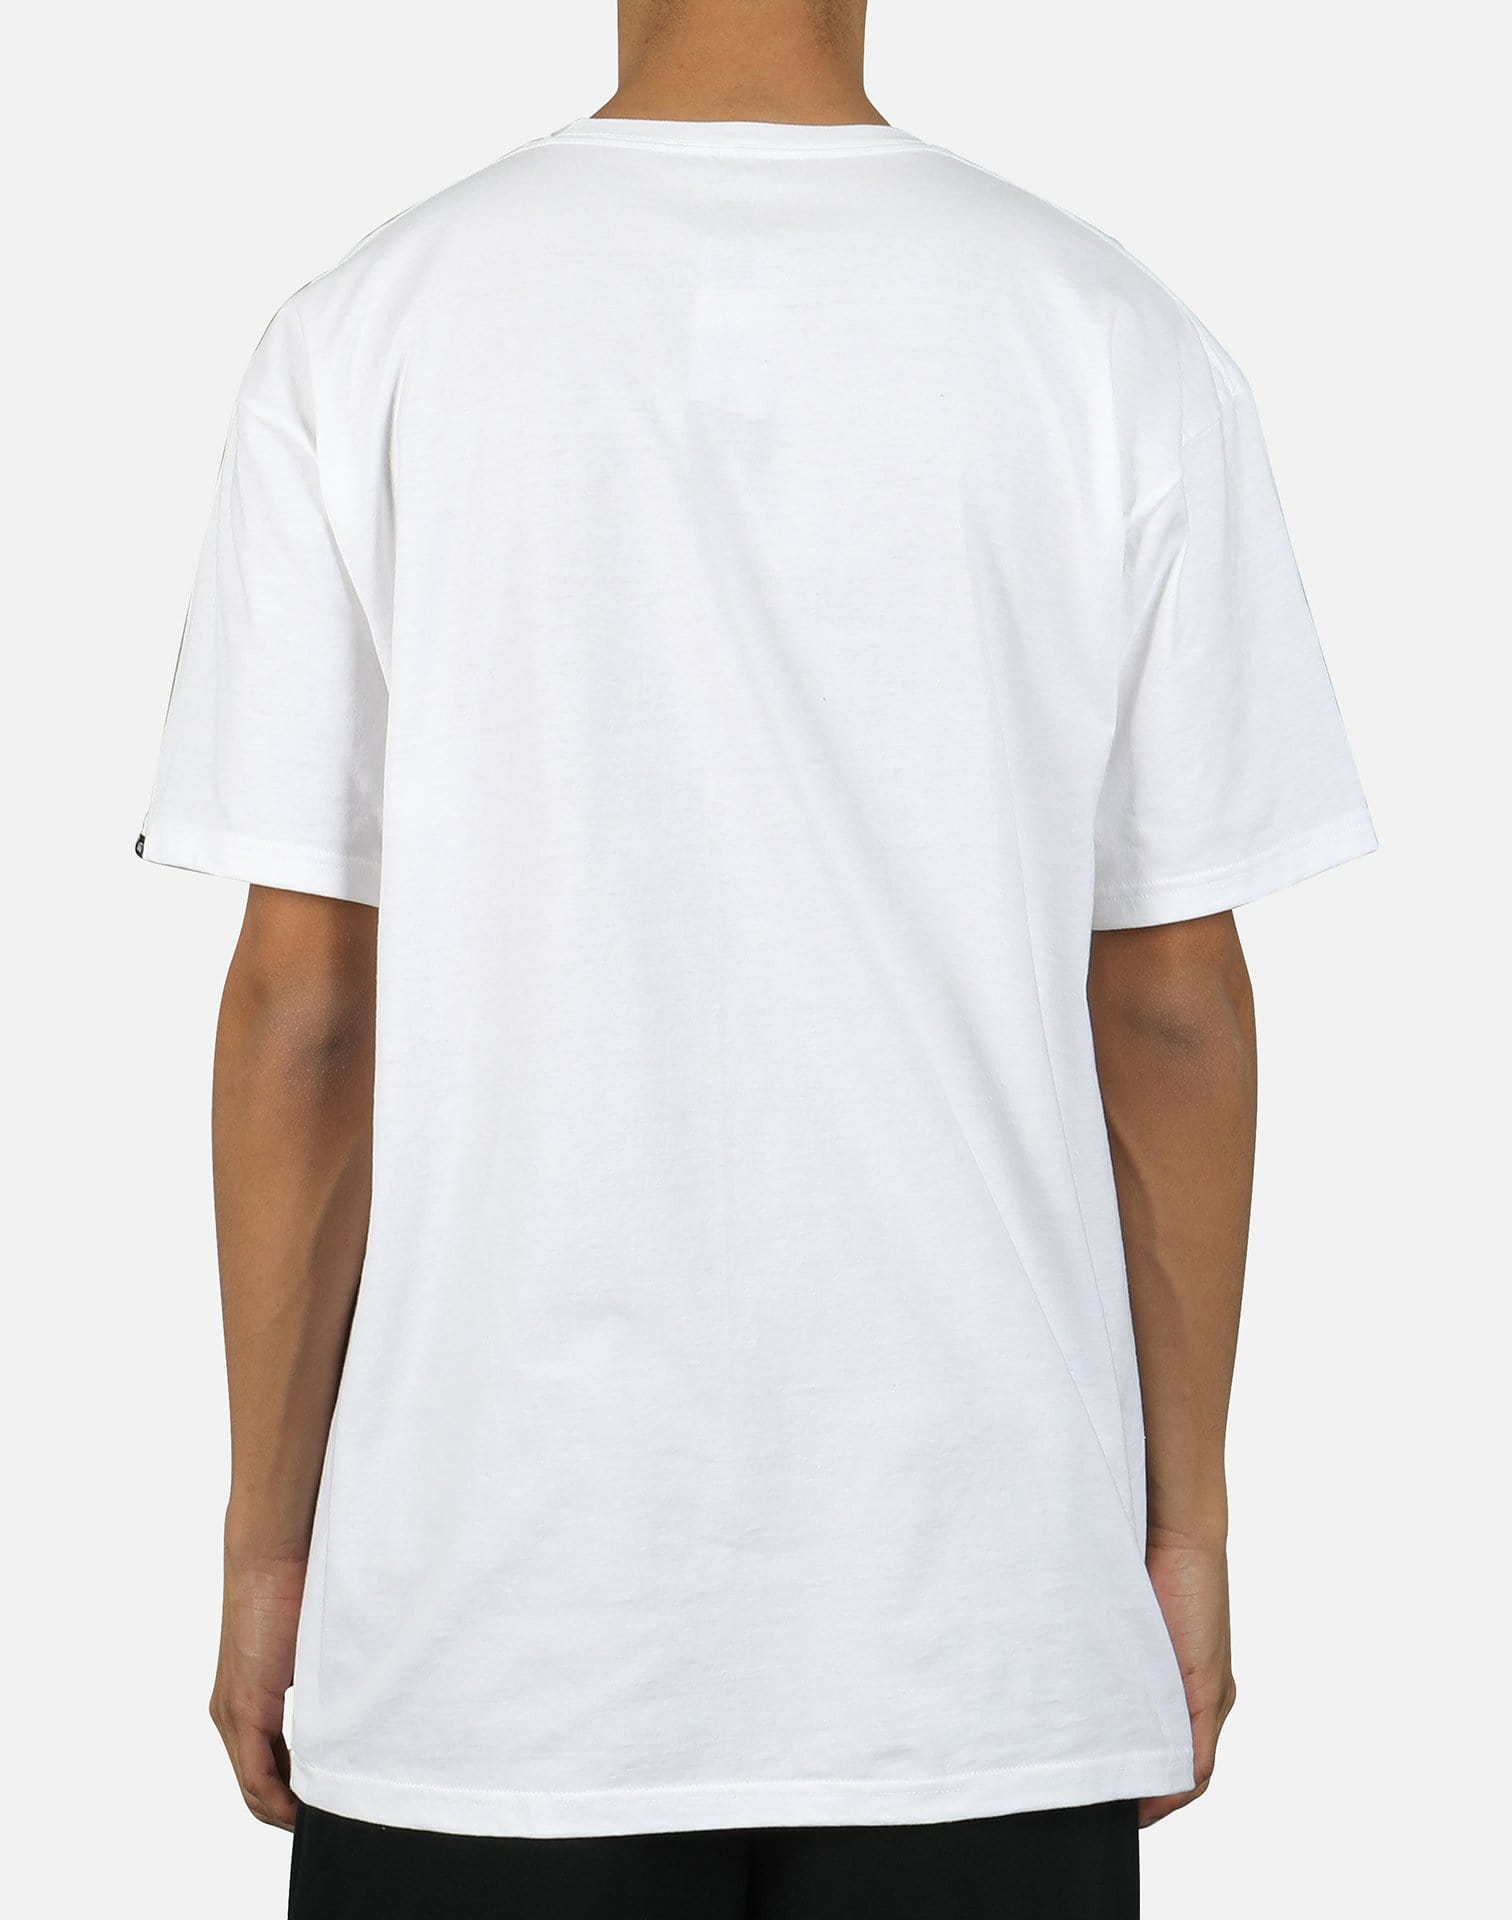 Vans Men's Full Patch Tee